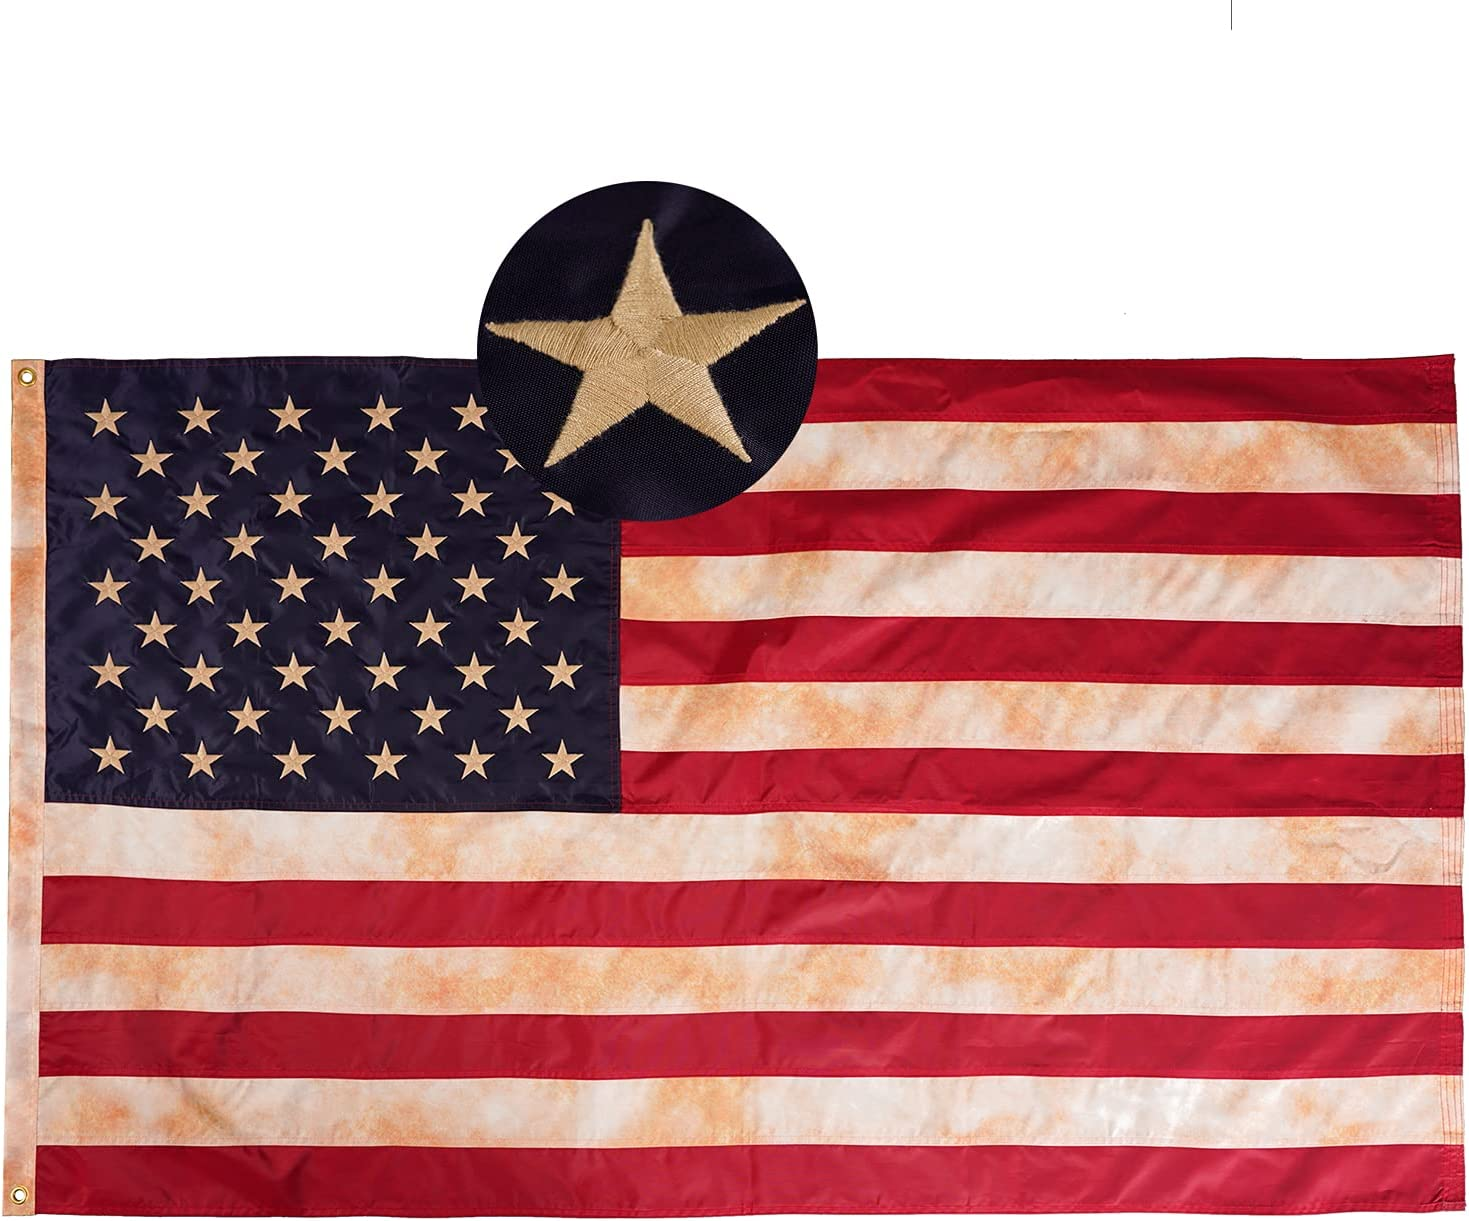 Flagolden Vintage Tea Stained American US Outdoor 3x5 Detroit Industry No. 1 Mall Flag Ba Ft